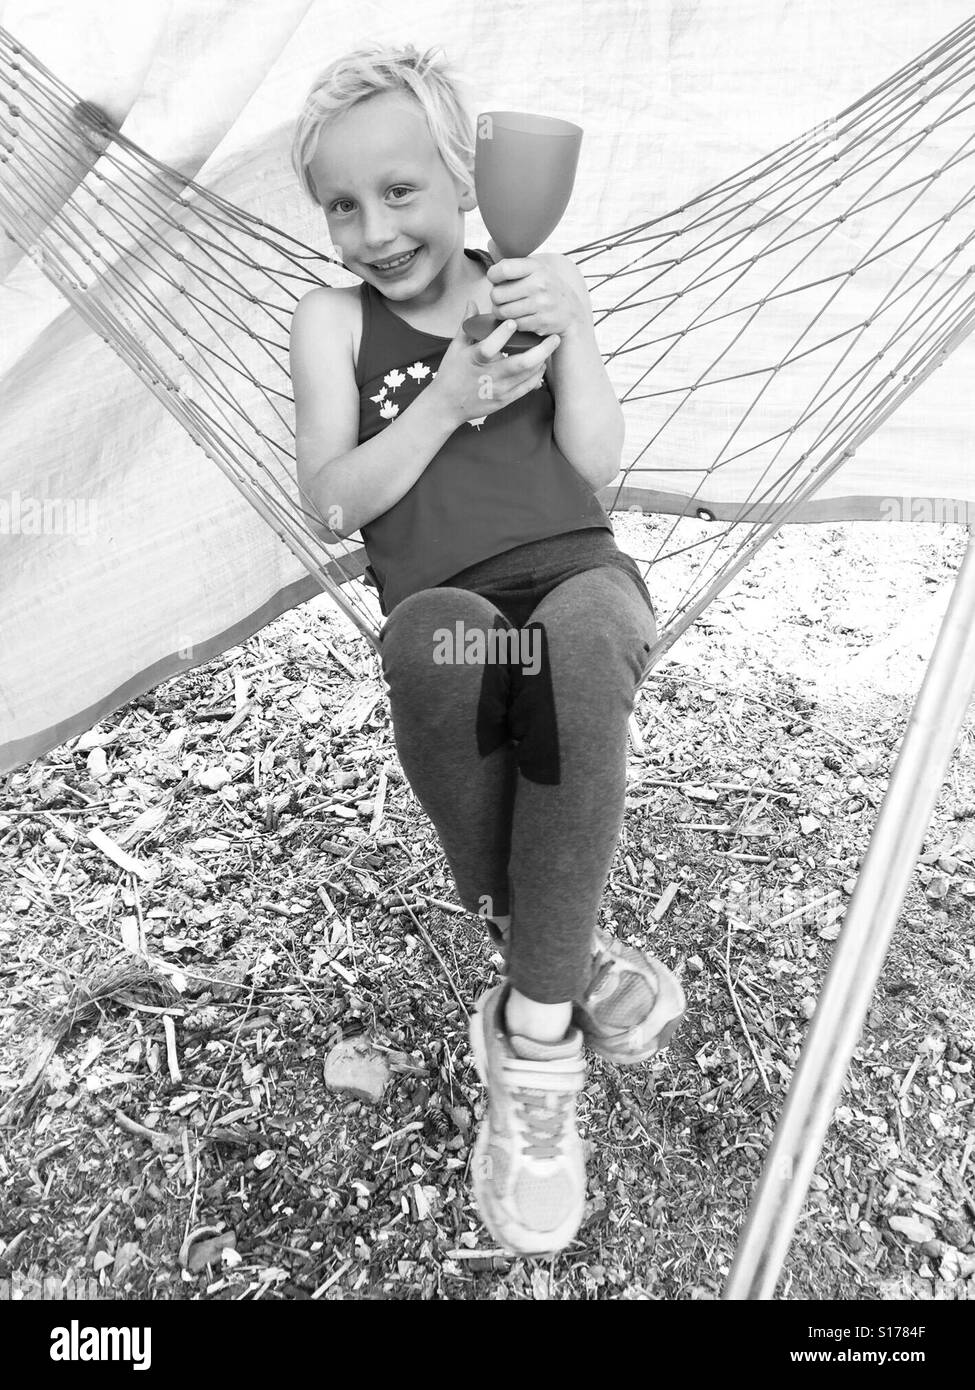 A girl in a hammock holds a drink. - Stock Image